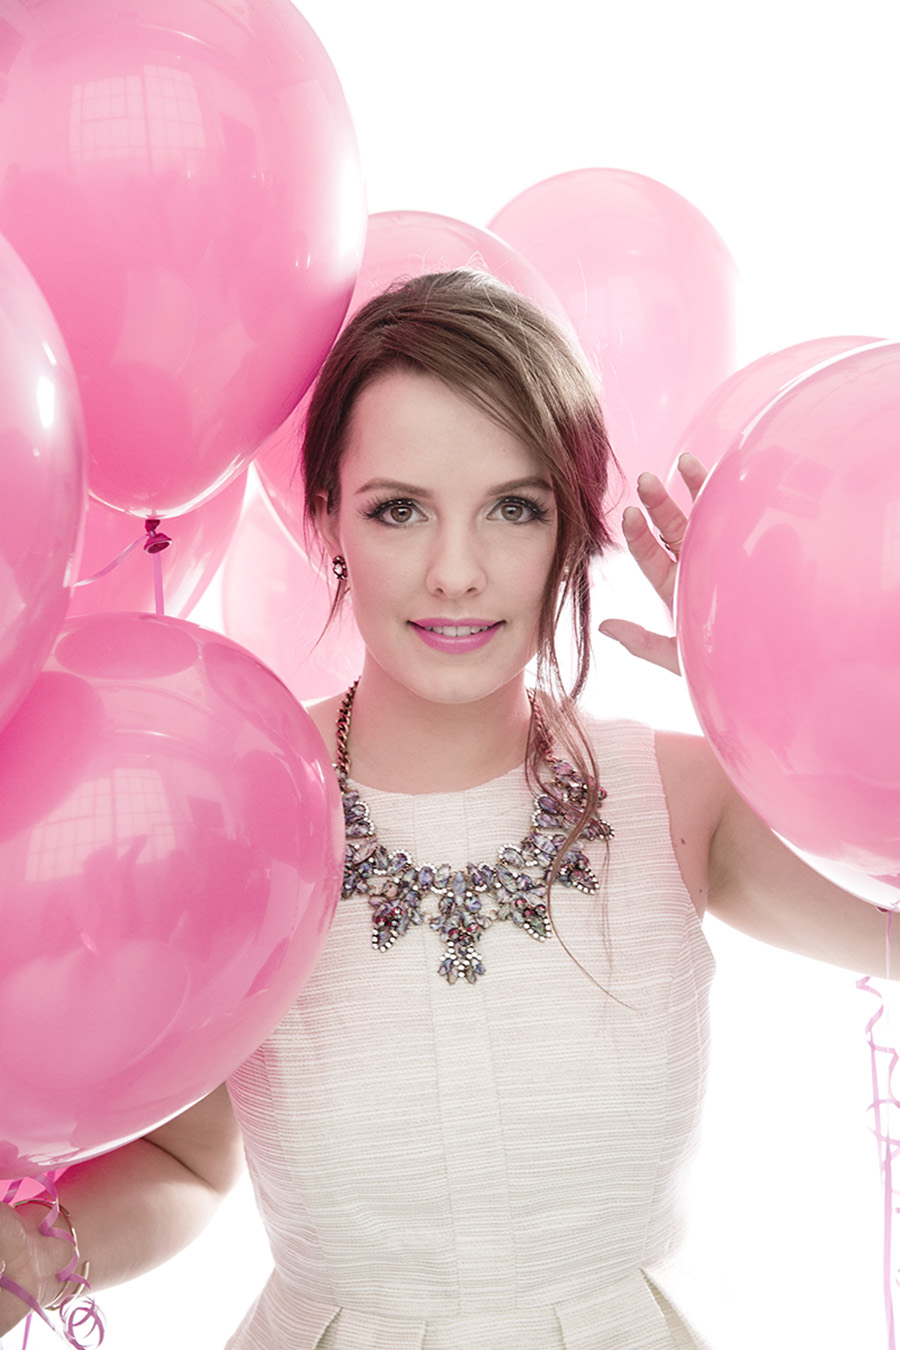 Victoria-Simpson-for-Shop-For-Jayu-Blogger-Campaign-Pink-Ballons